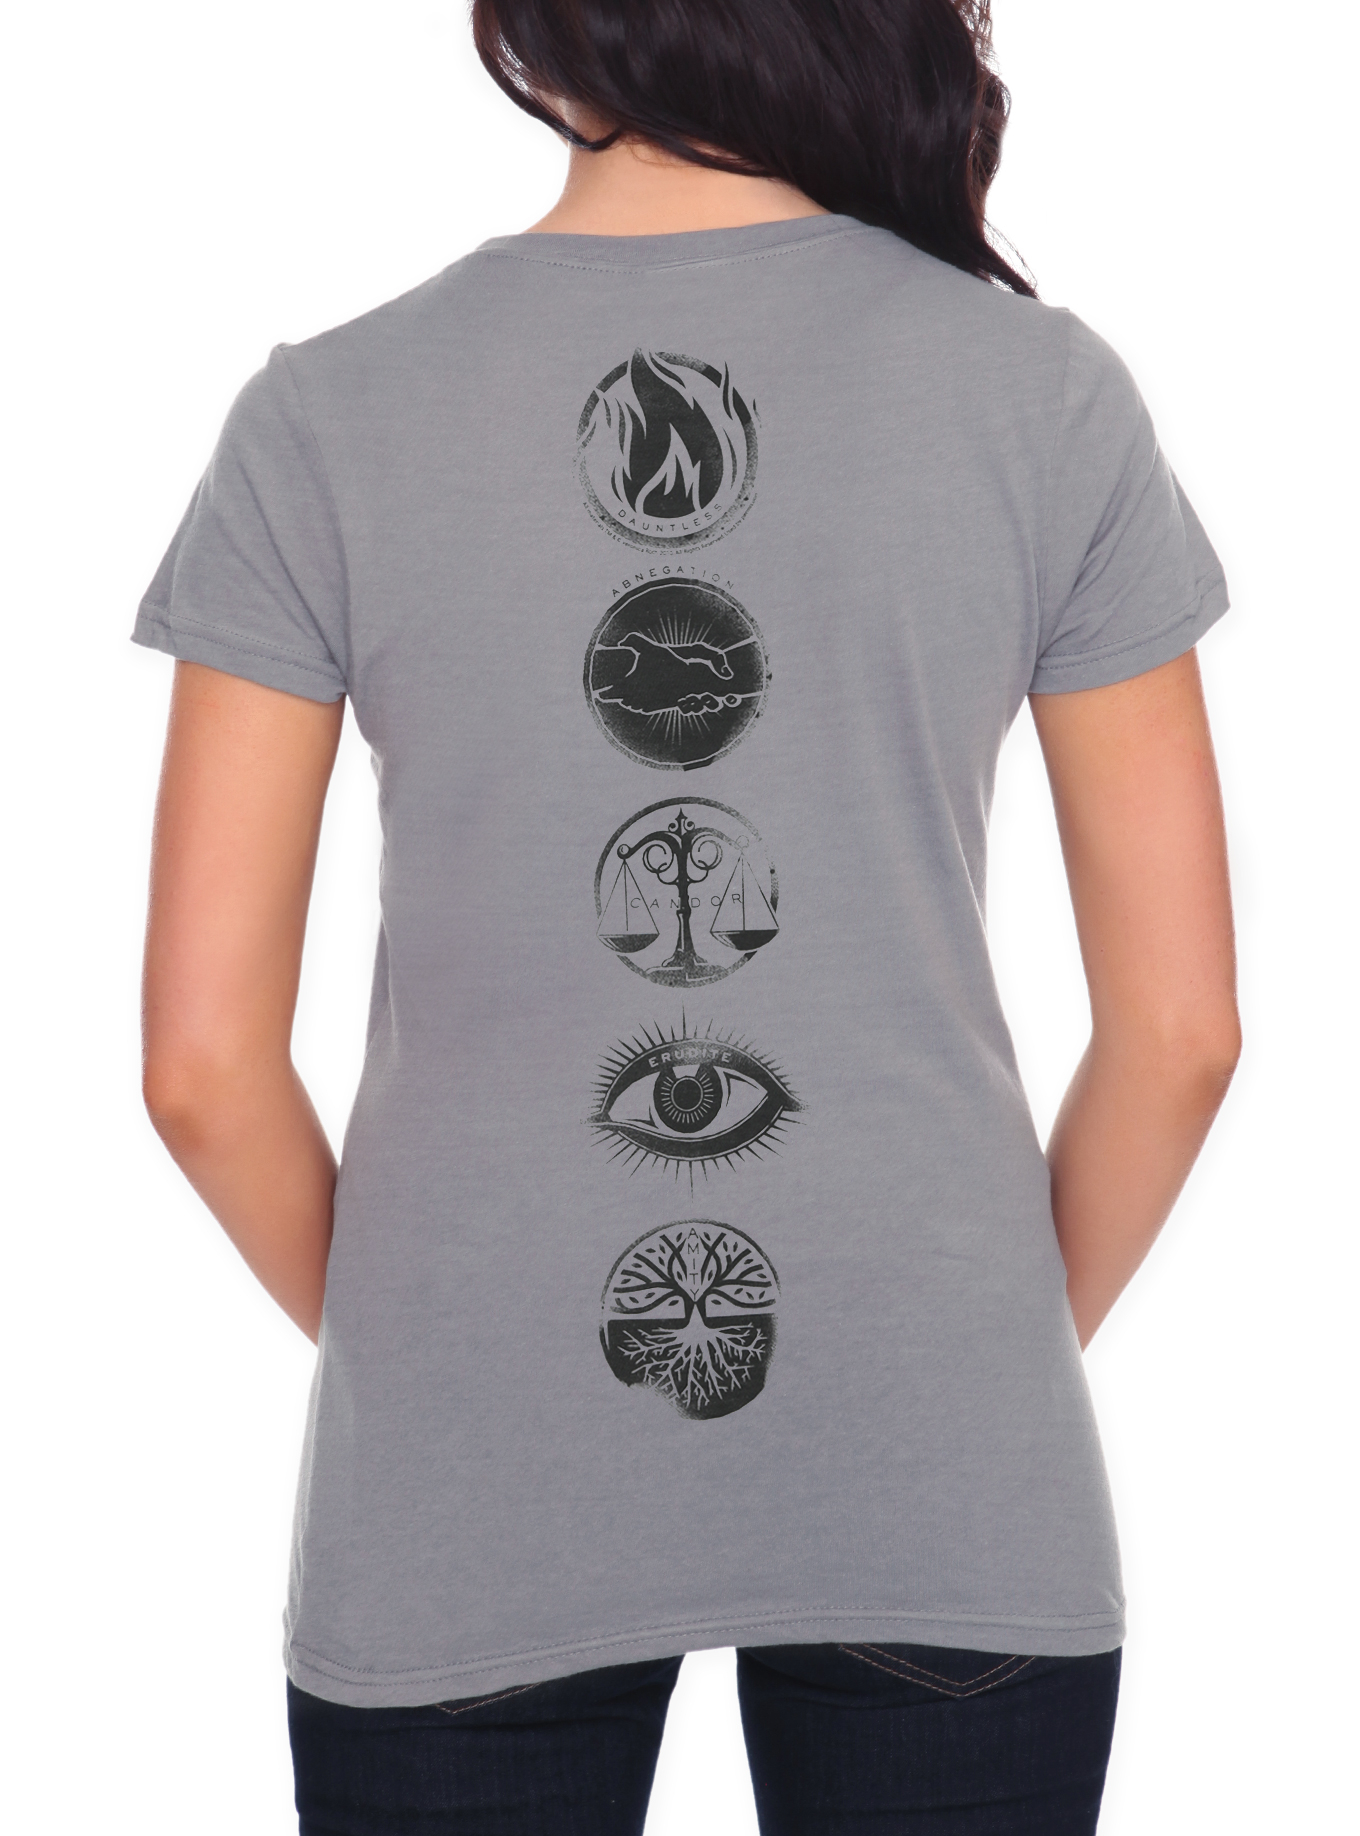 Divergent Five Factions Girls T-Shirt | Hot Topic